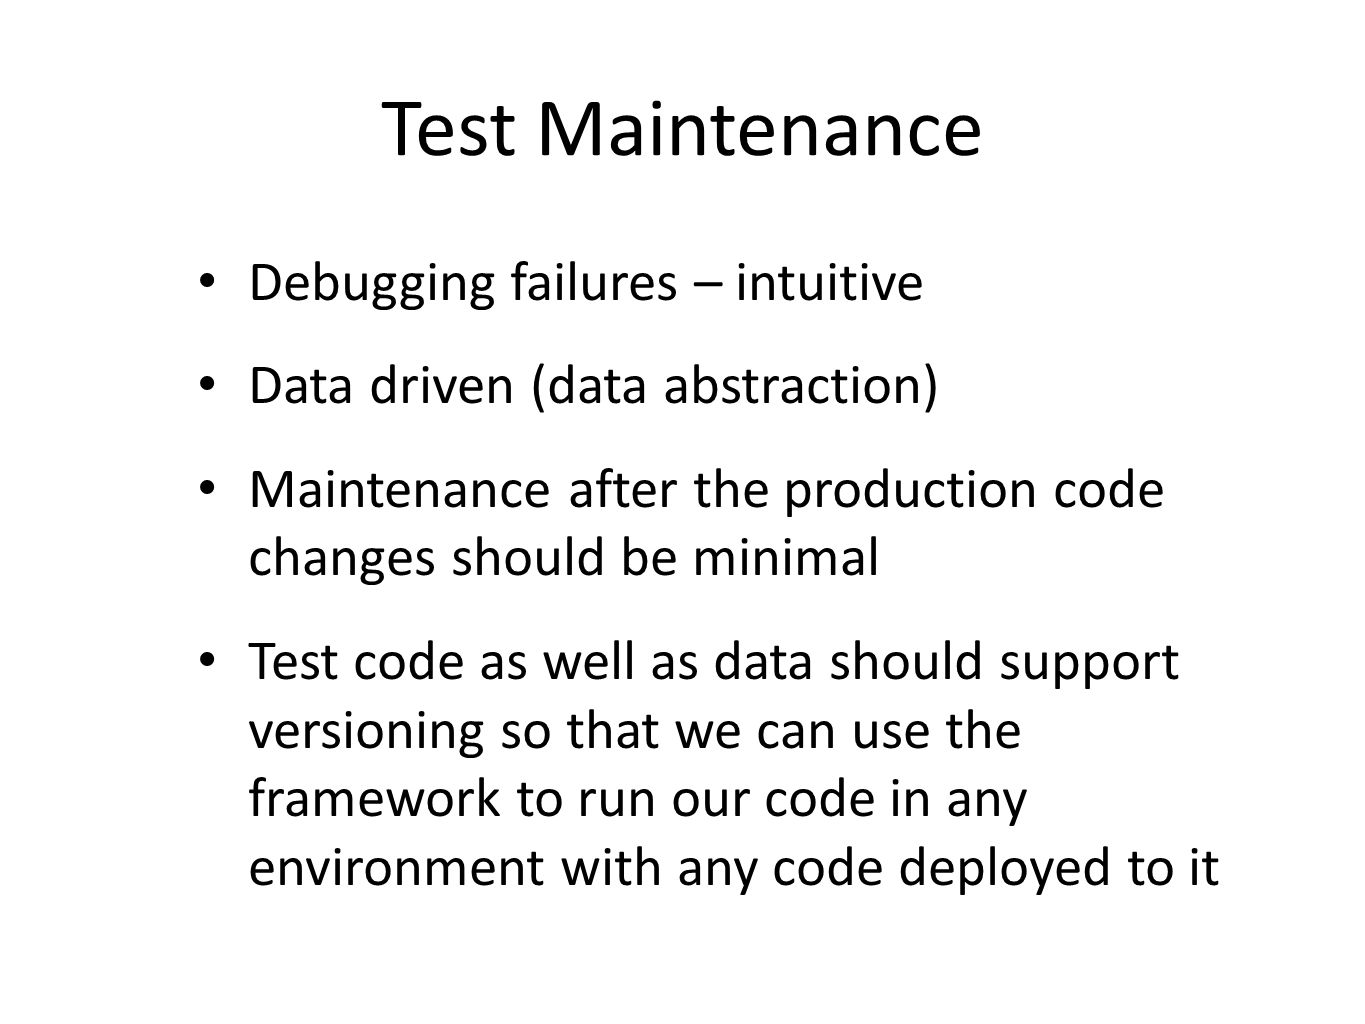 Test Maintenance Debugging failures – intuitive Data driven (data abstraction) Maintenance after the production code changes should be minimal Test code as well as data should support versioning so that we can use the framework to run our code in any environment with any code deployed to it